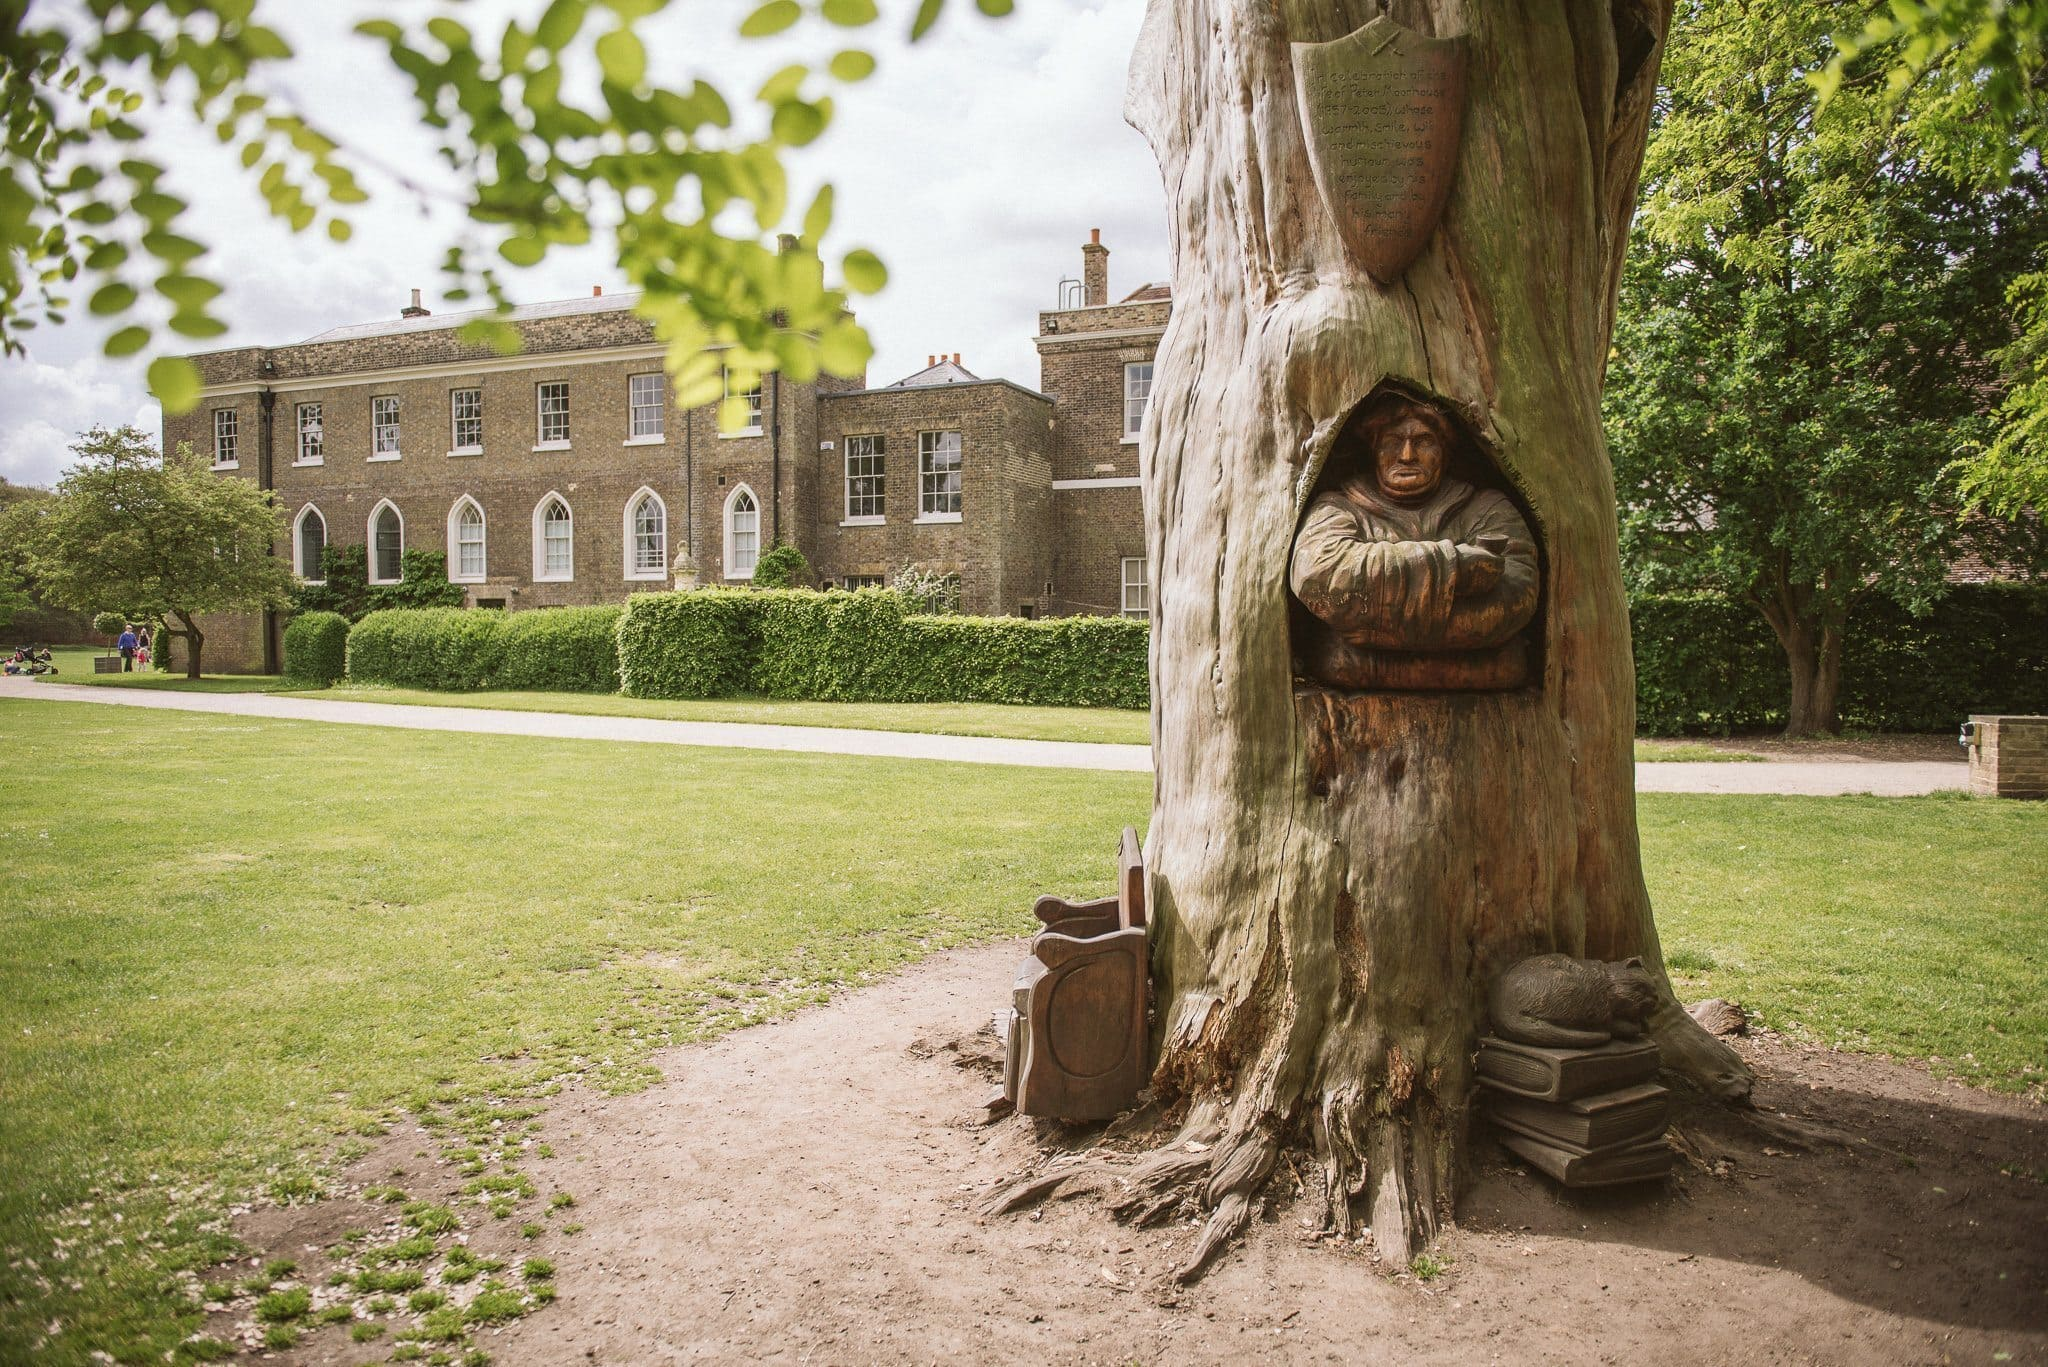 A statue is carved into the trunk of a tree in the grounds of Fulham Palace